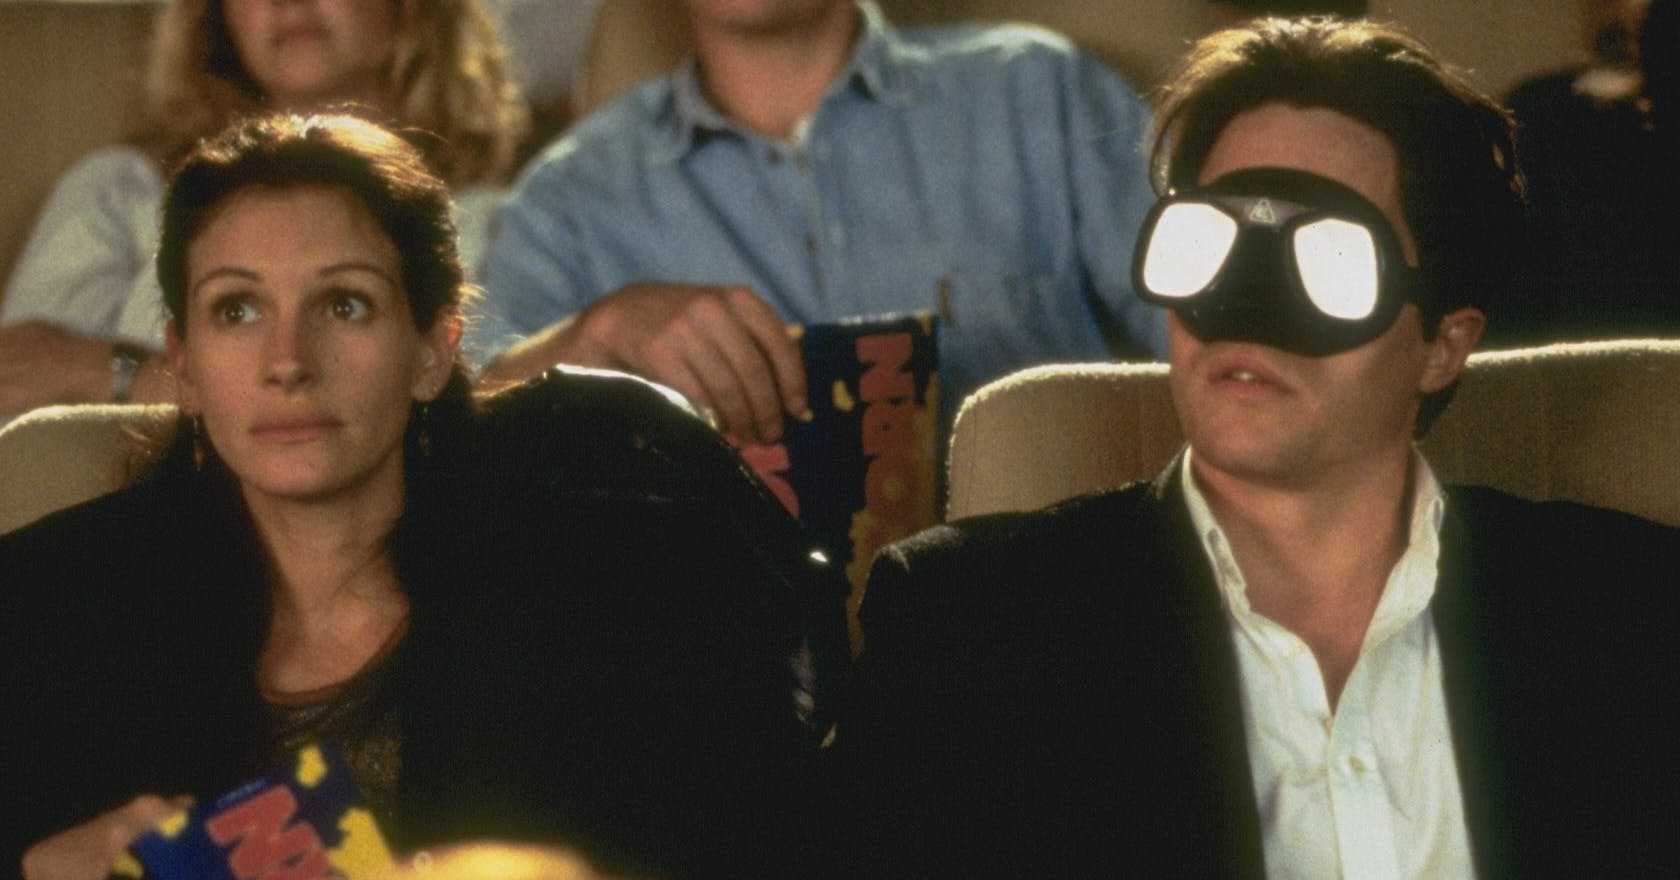 10 of the best romantic comedies to uplift your spirits